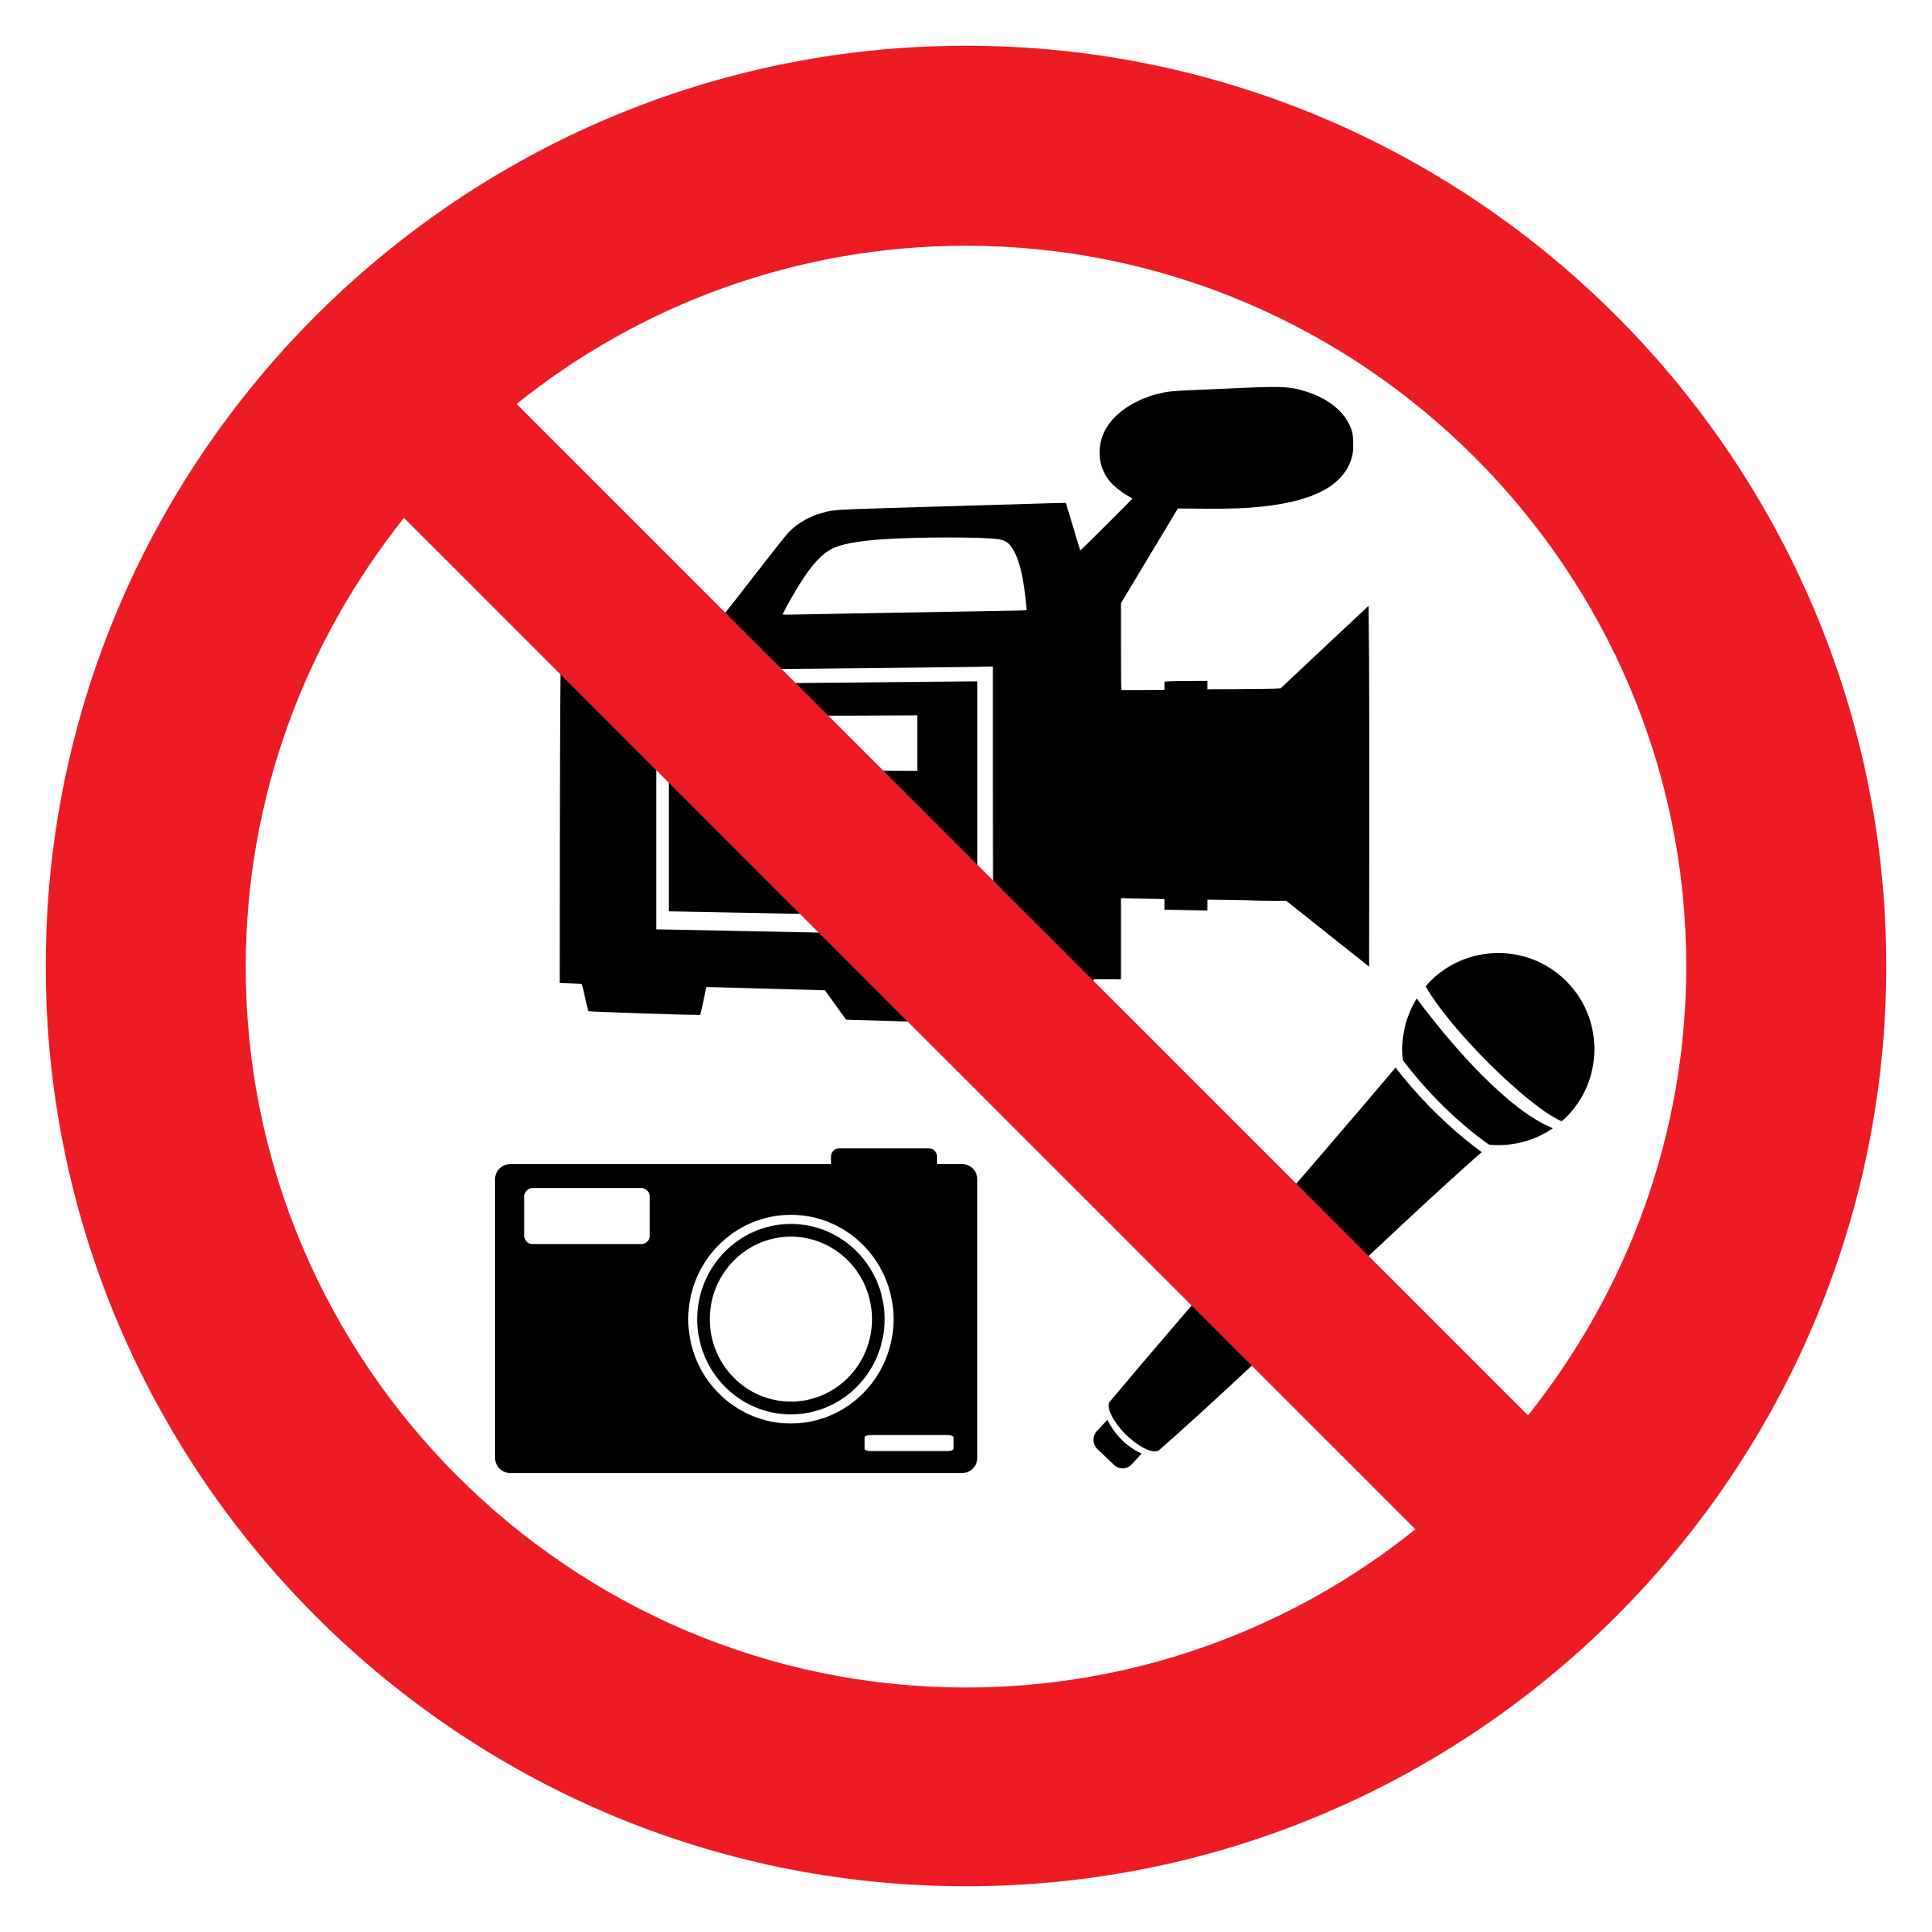 No recording png. Media allowed icons free